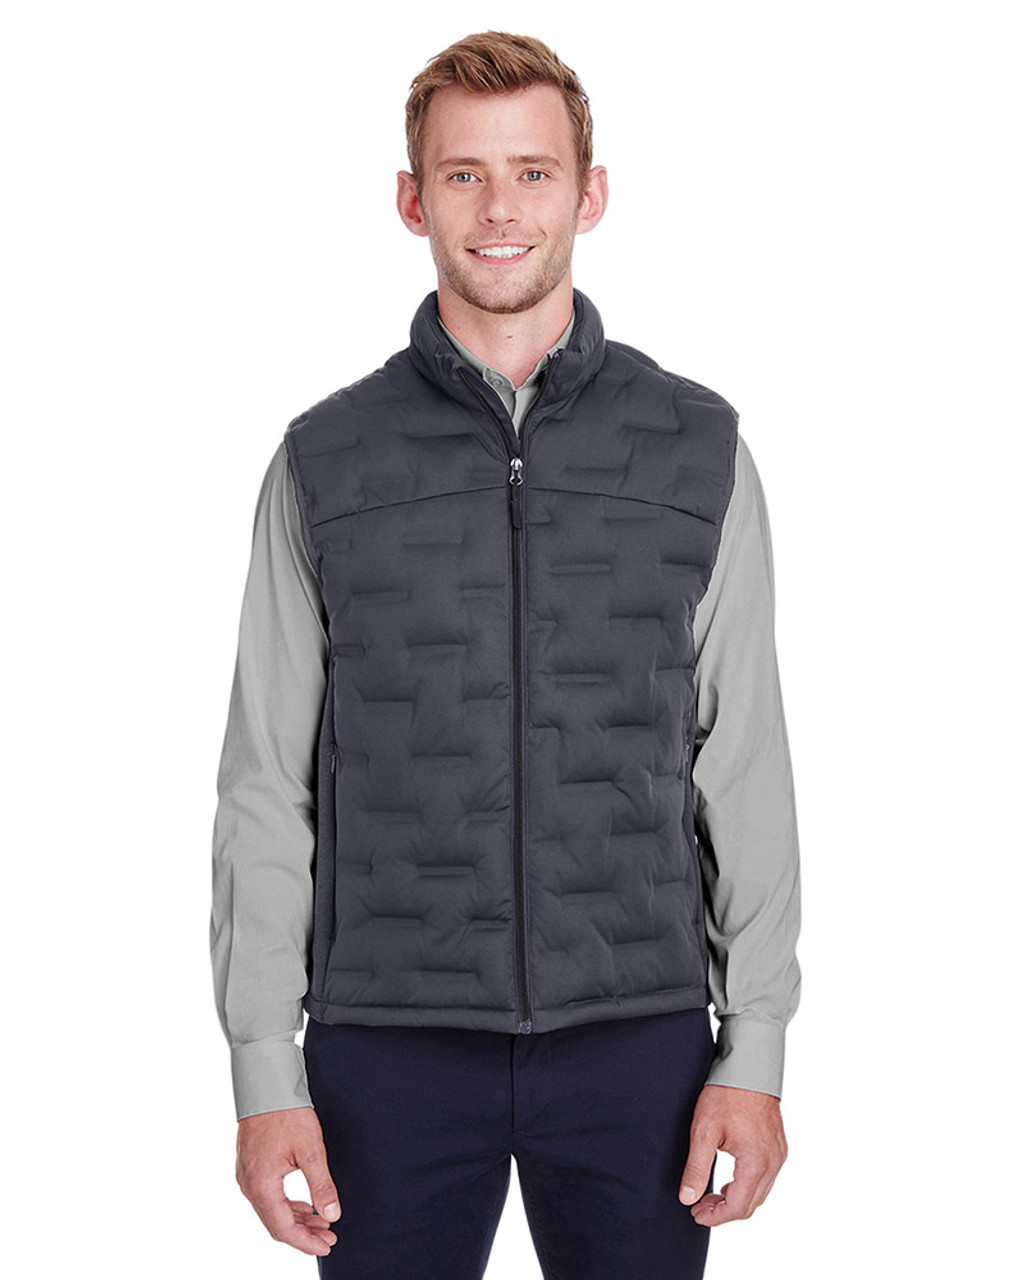 Carbon/Black Heather/Black - NE709 North End Men's Pioneer Hybrid Vest | Blankclothing.ca